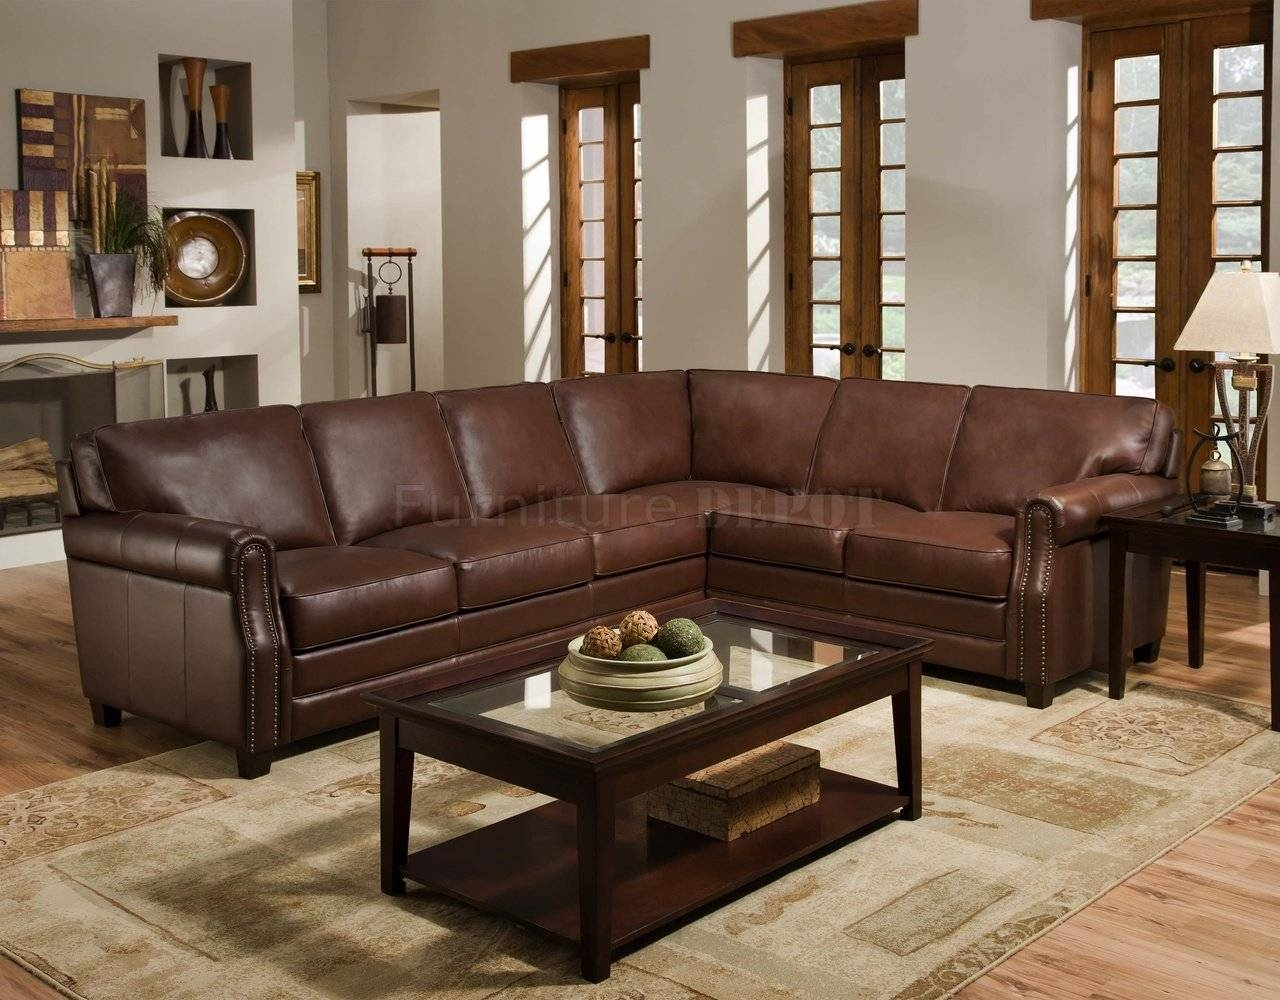 Wonderful Traditional Sectional Sofas Living Room Furniture 41 On in Traditional Sectional Sofas Living Room Furniture (Image 25 of 25)